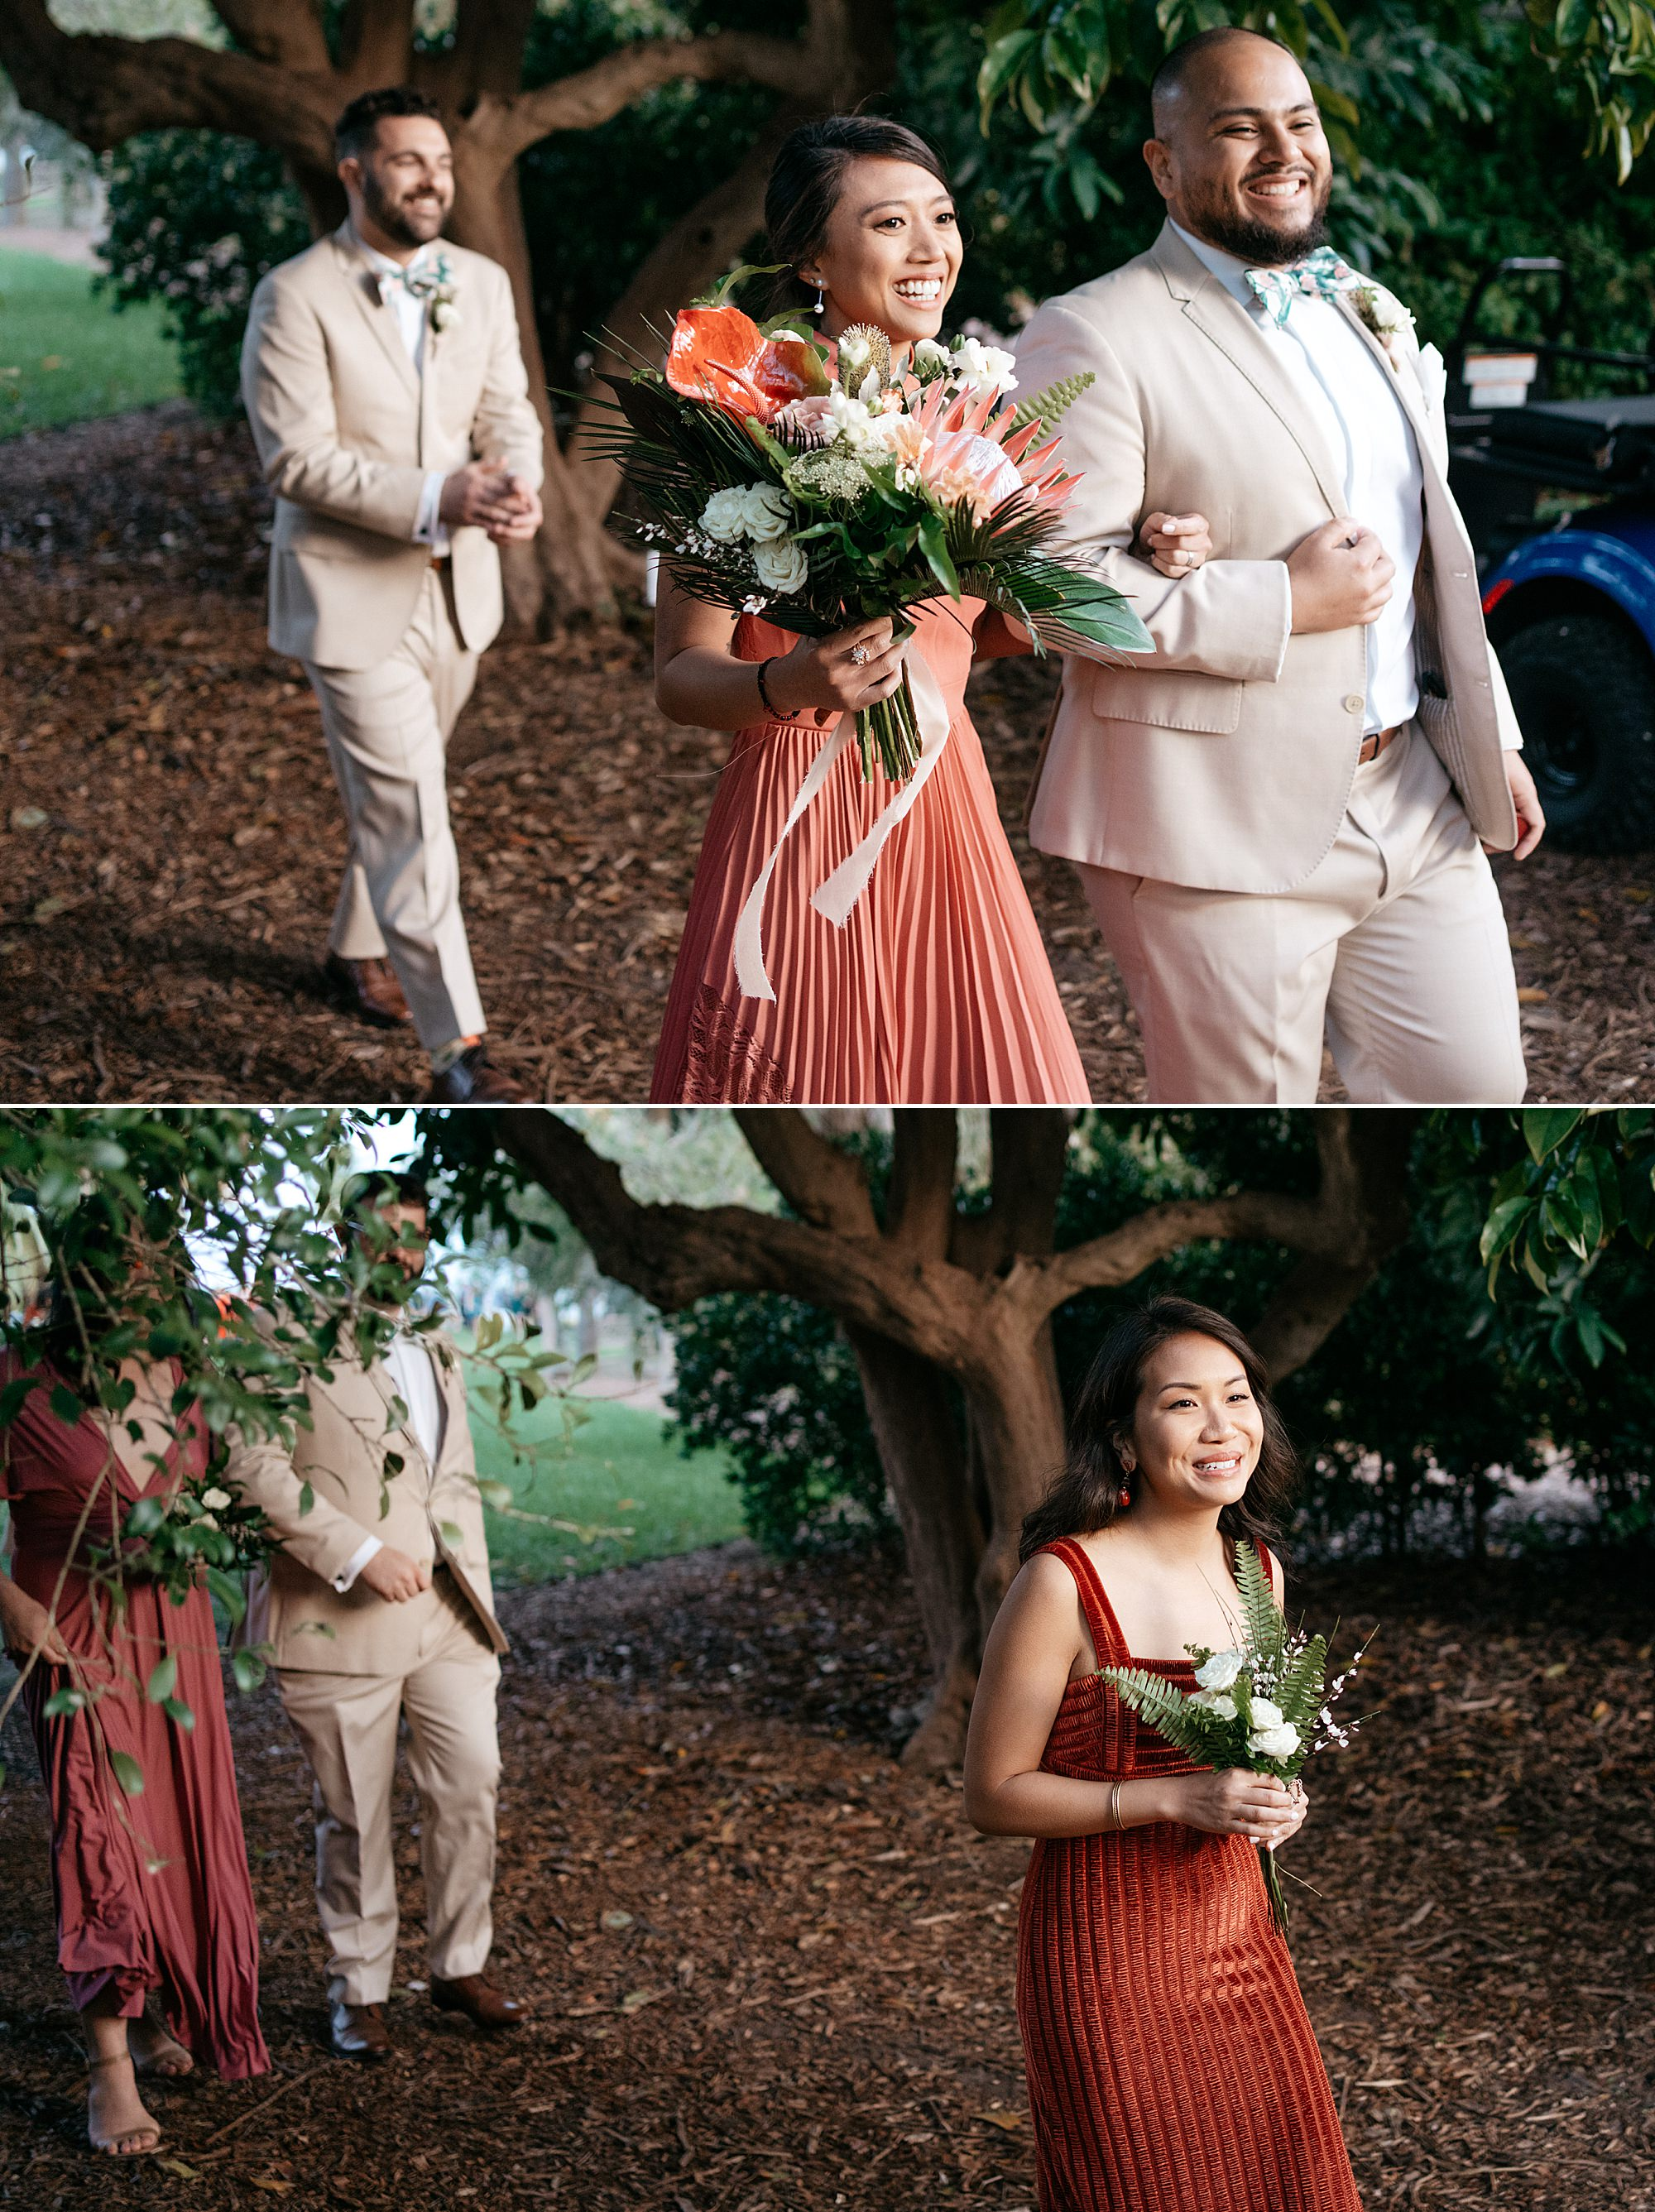 natural wedding photography miami the kampong 0467 1